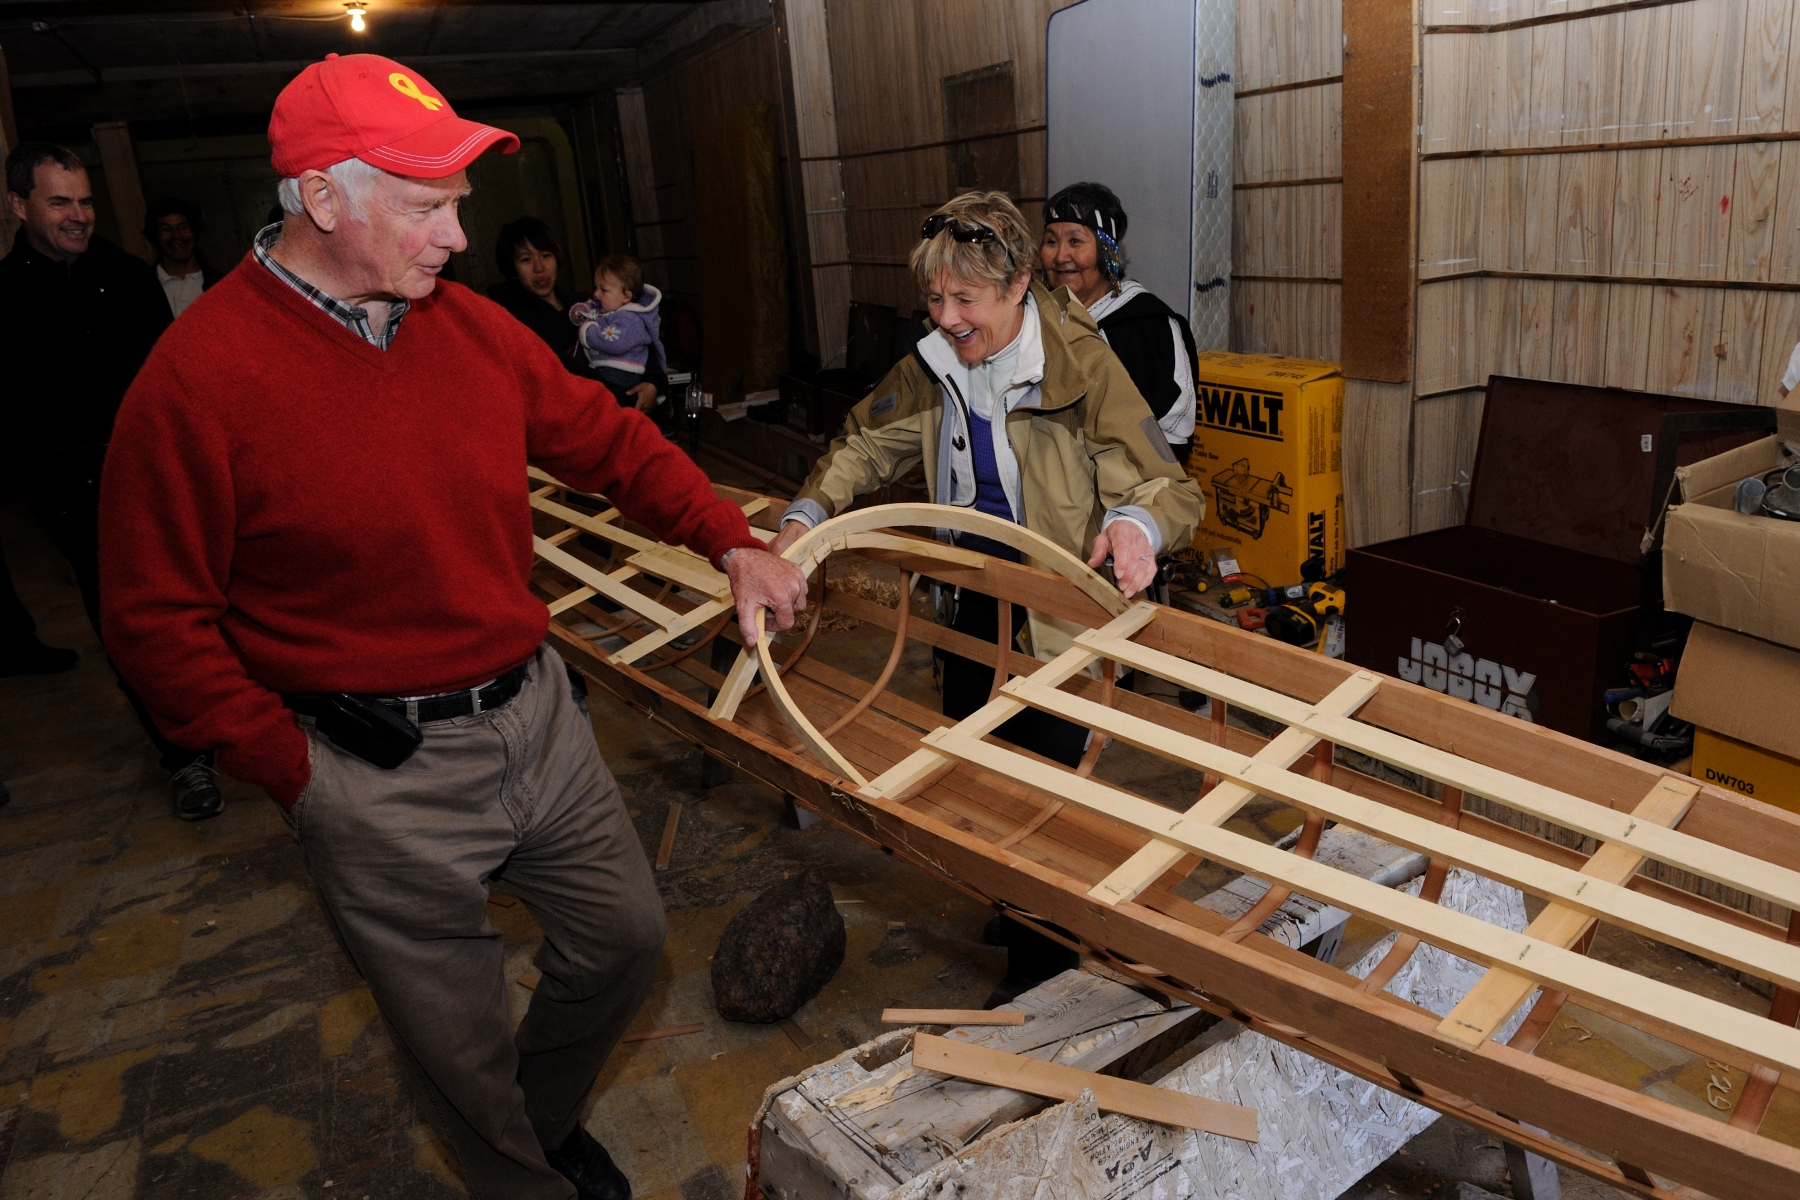 Their Excellencies had the unique opportunity to work with Elders and students on the design and construction of a sea Kayak, using traditional tools.